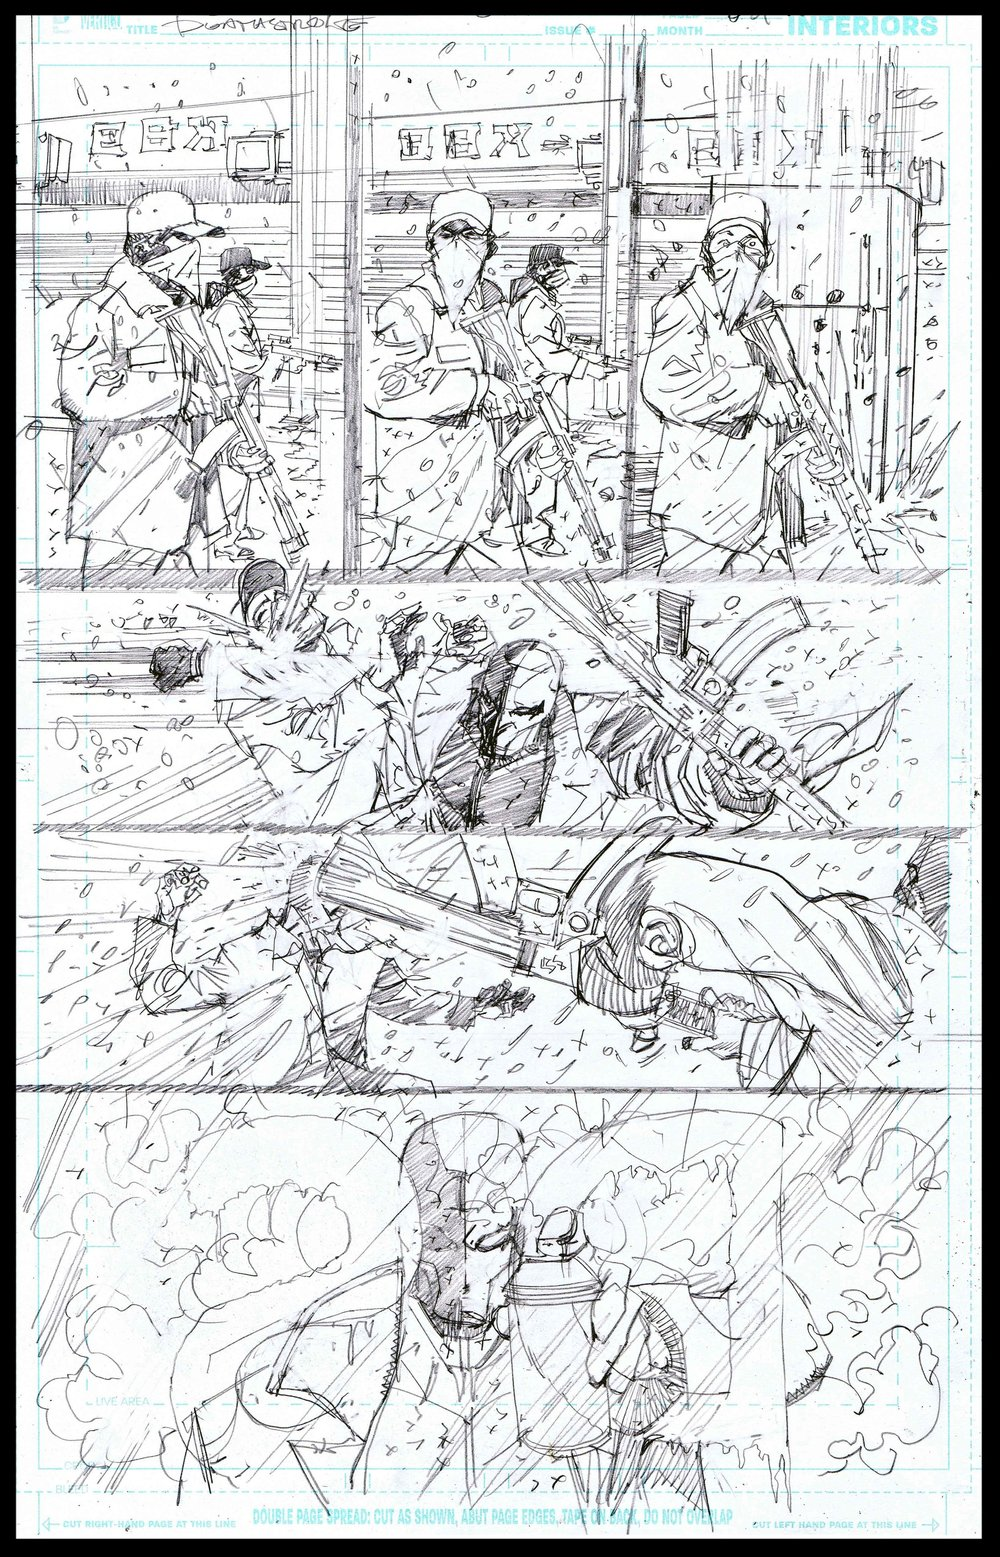 Deathstroke #11 - Page 8 - Pencils